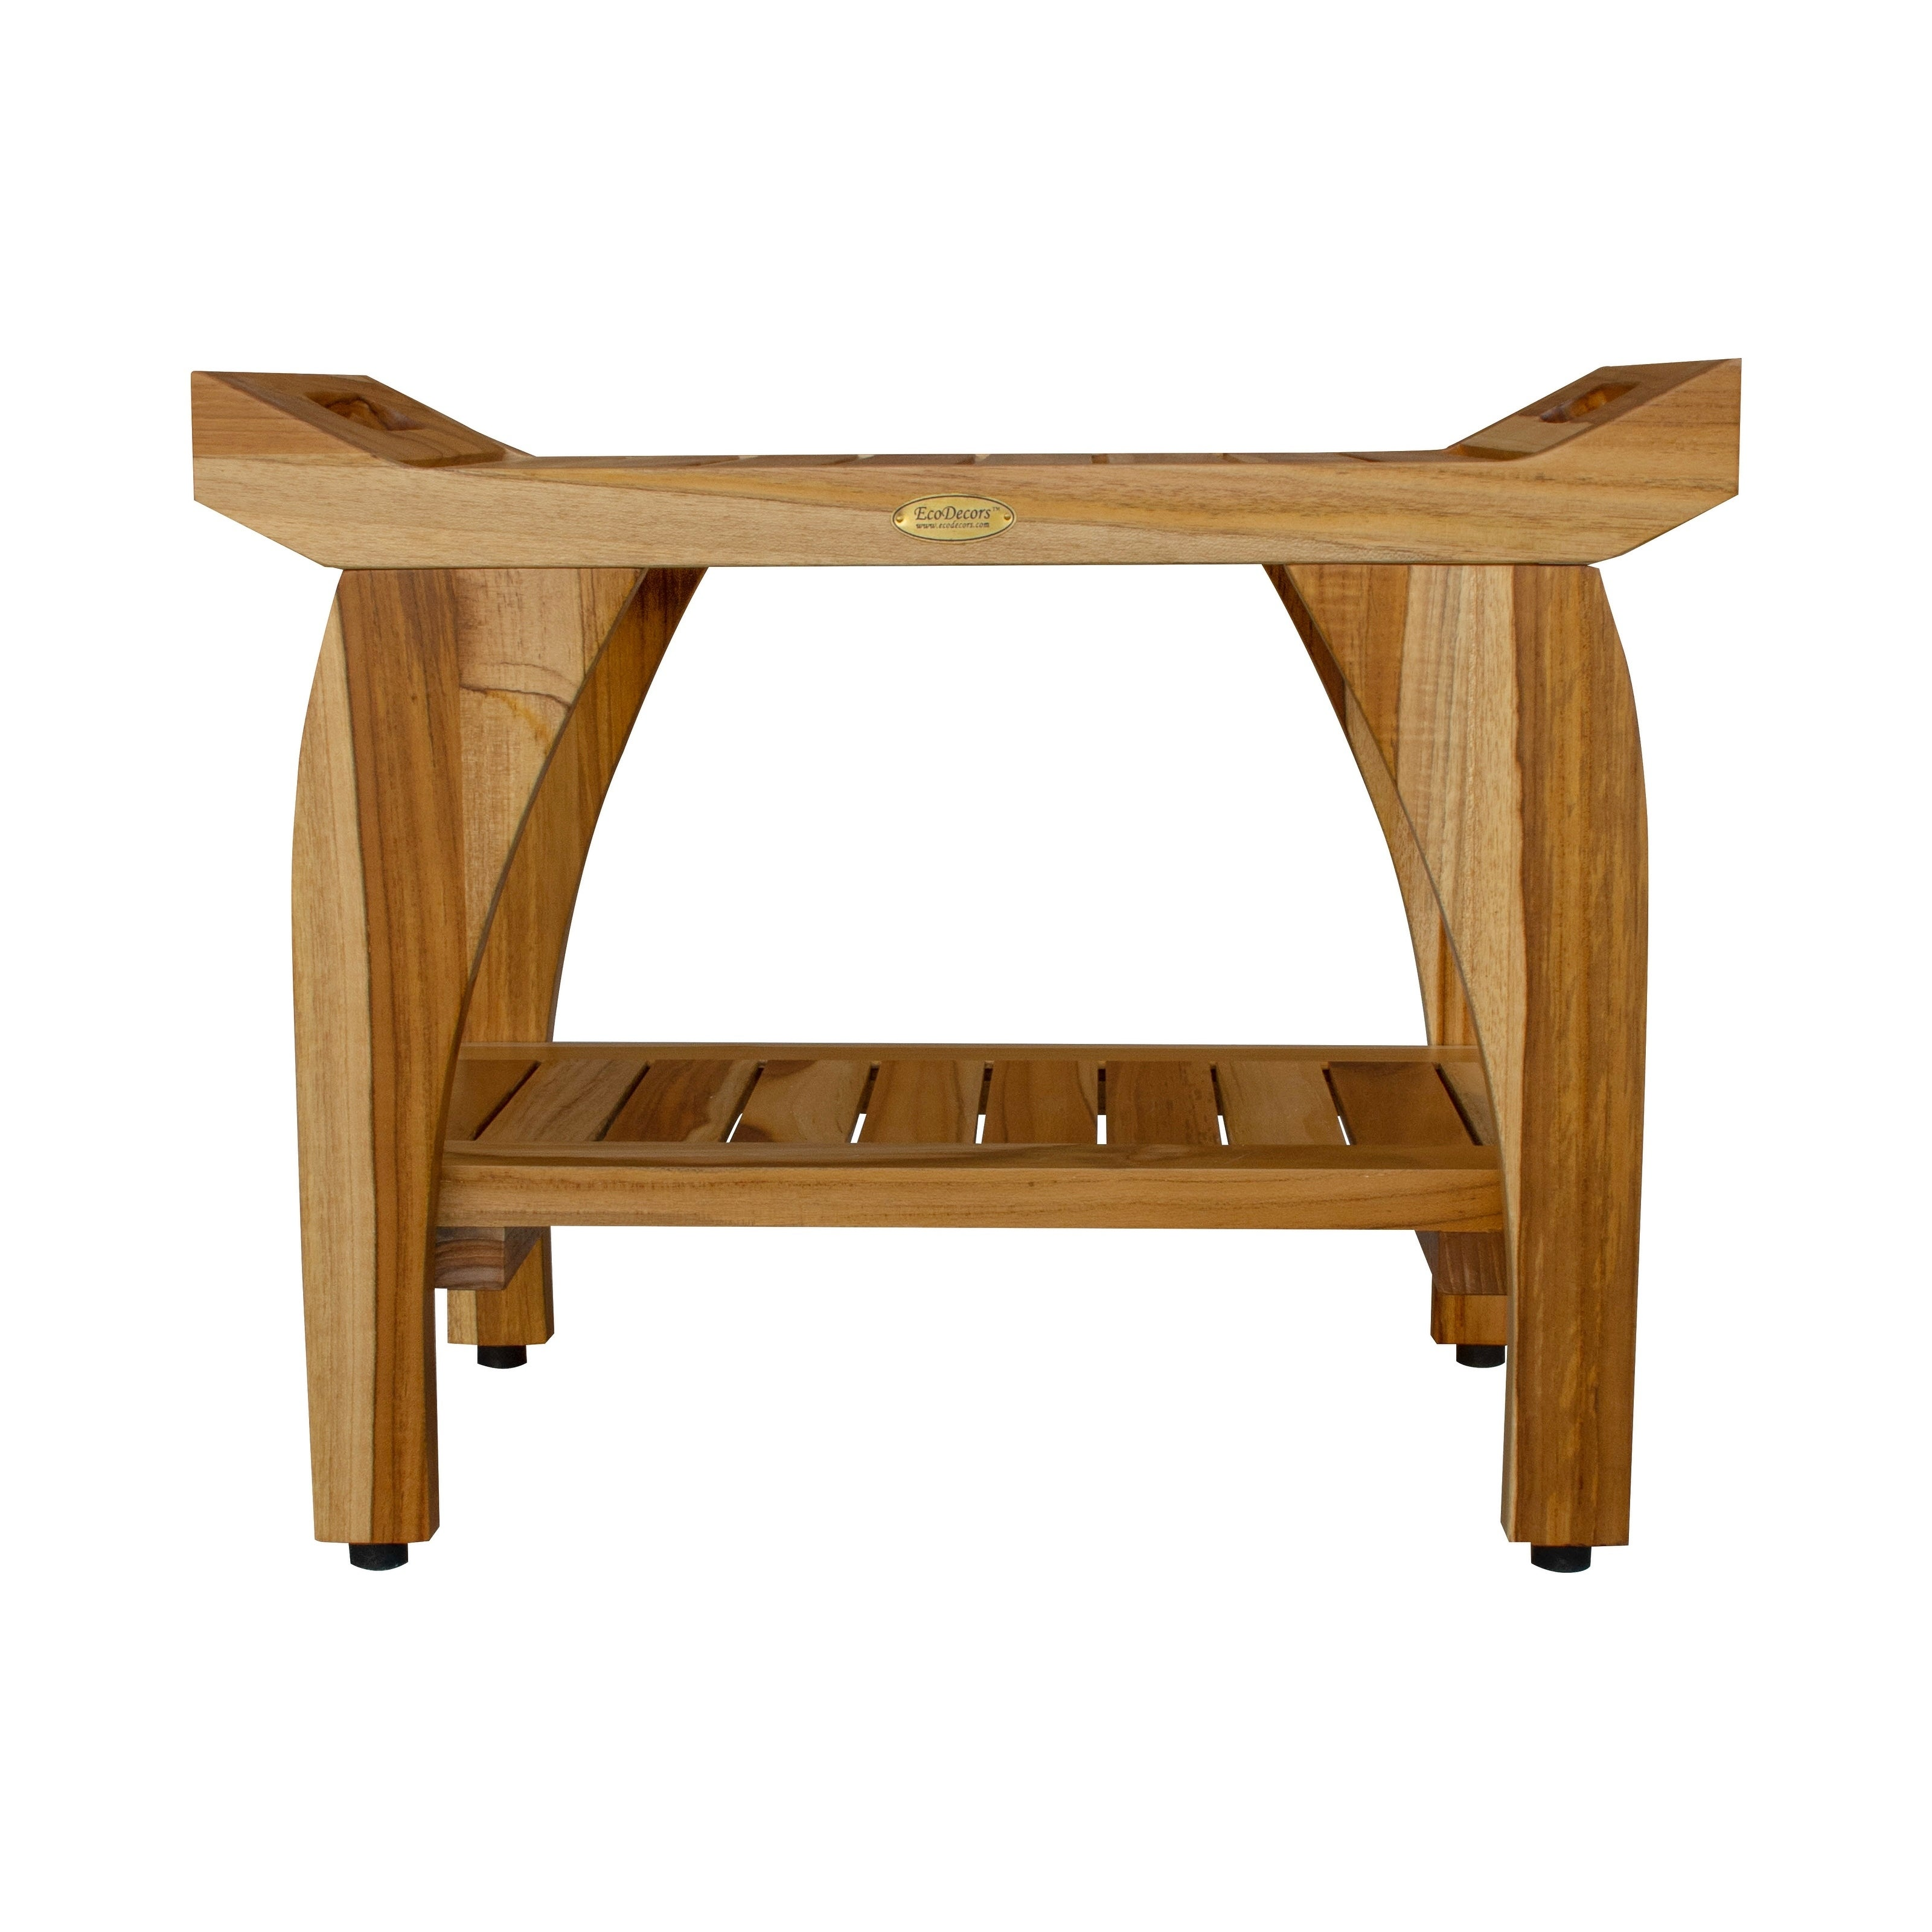 24 Ecodecors Earthyteak Tranquility Solid Teak Shower Bench With Shelf Finish